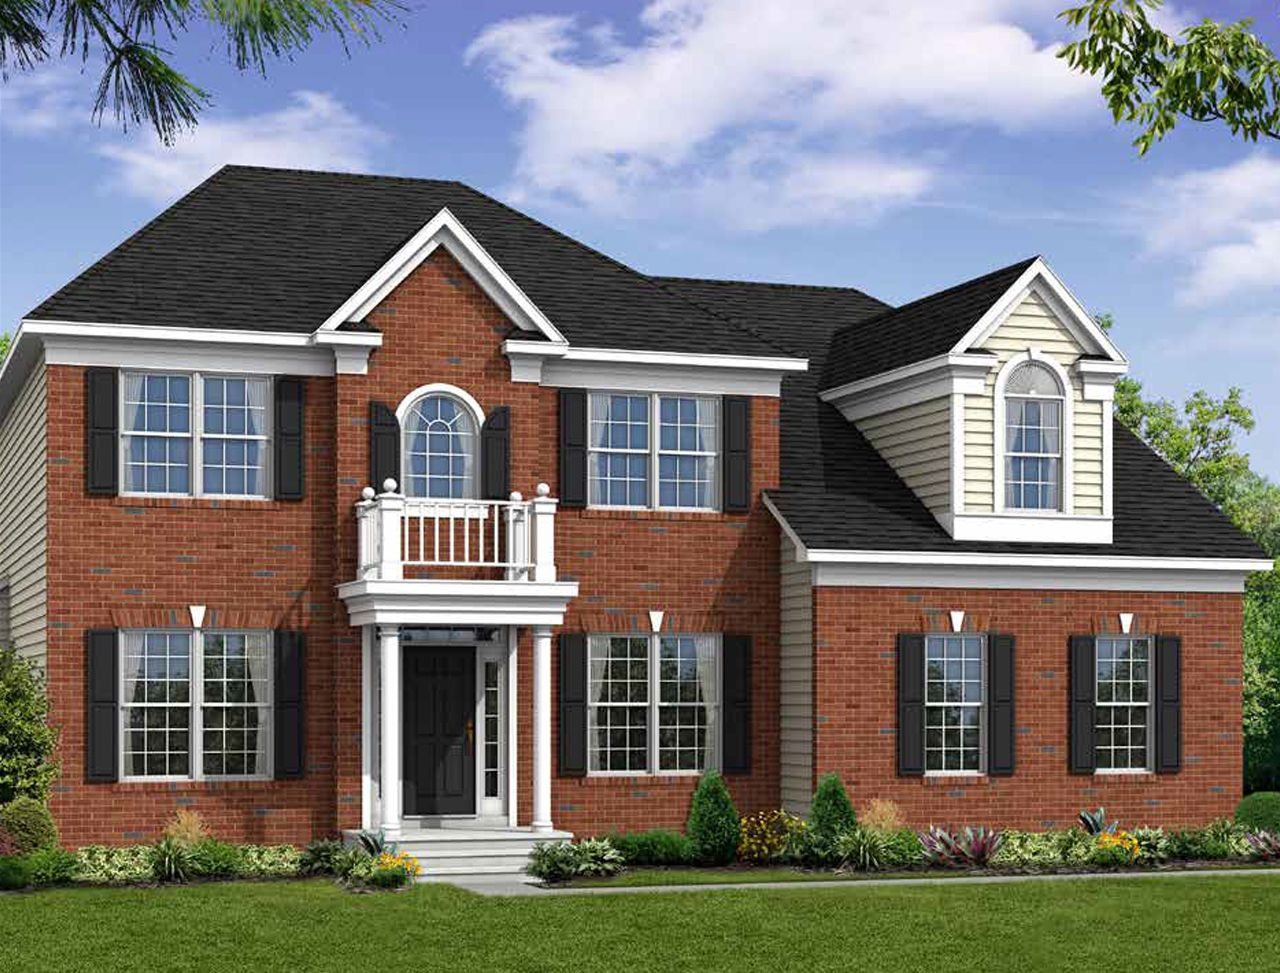 Exterior featured in the Adrienne's Honneur II By Williamsburg Homes LLC in Baltimore, MD